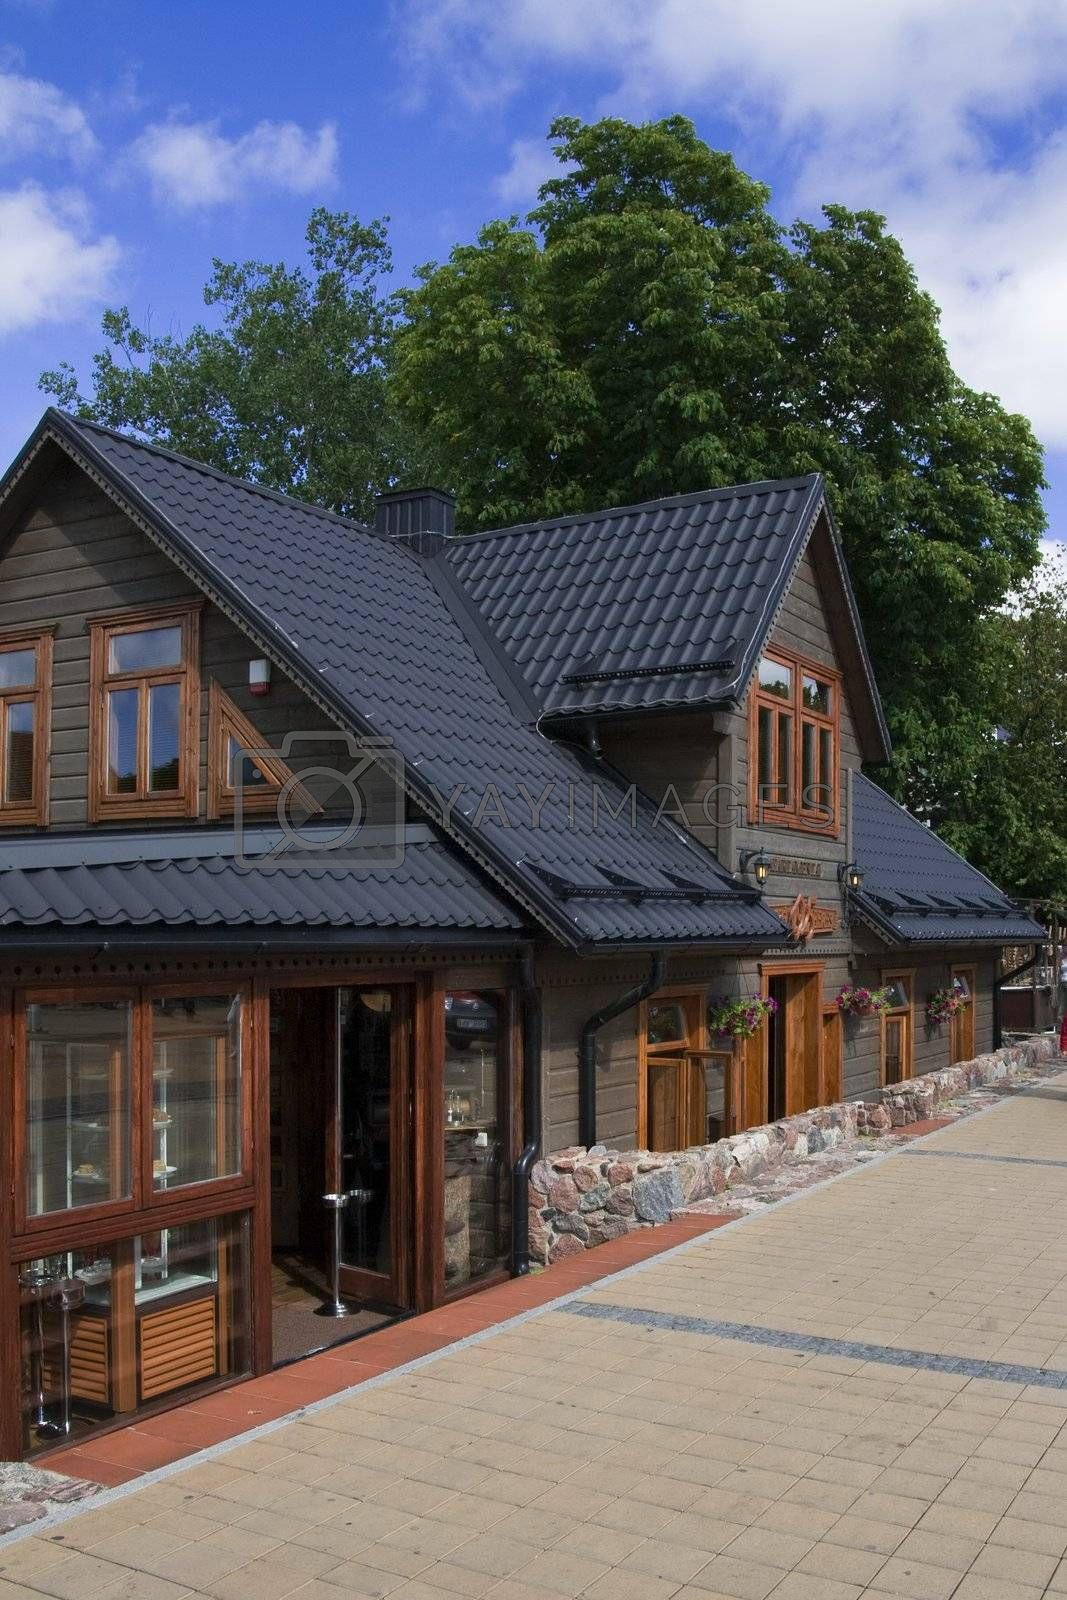 Wooden house in Palanga, Lithuania